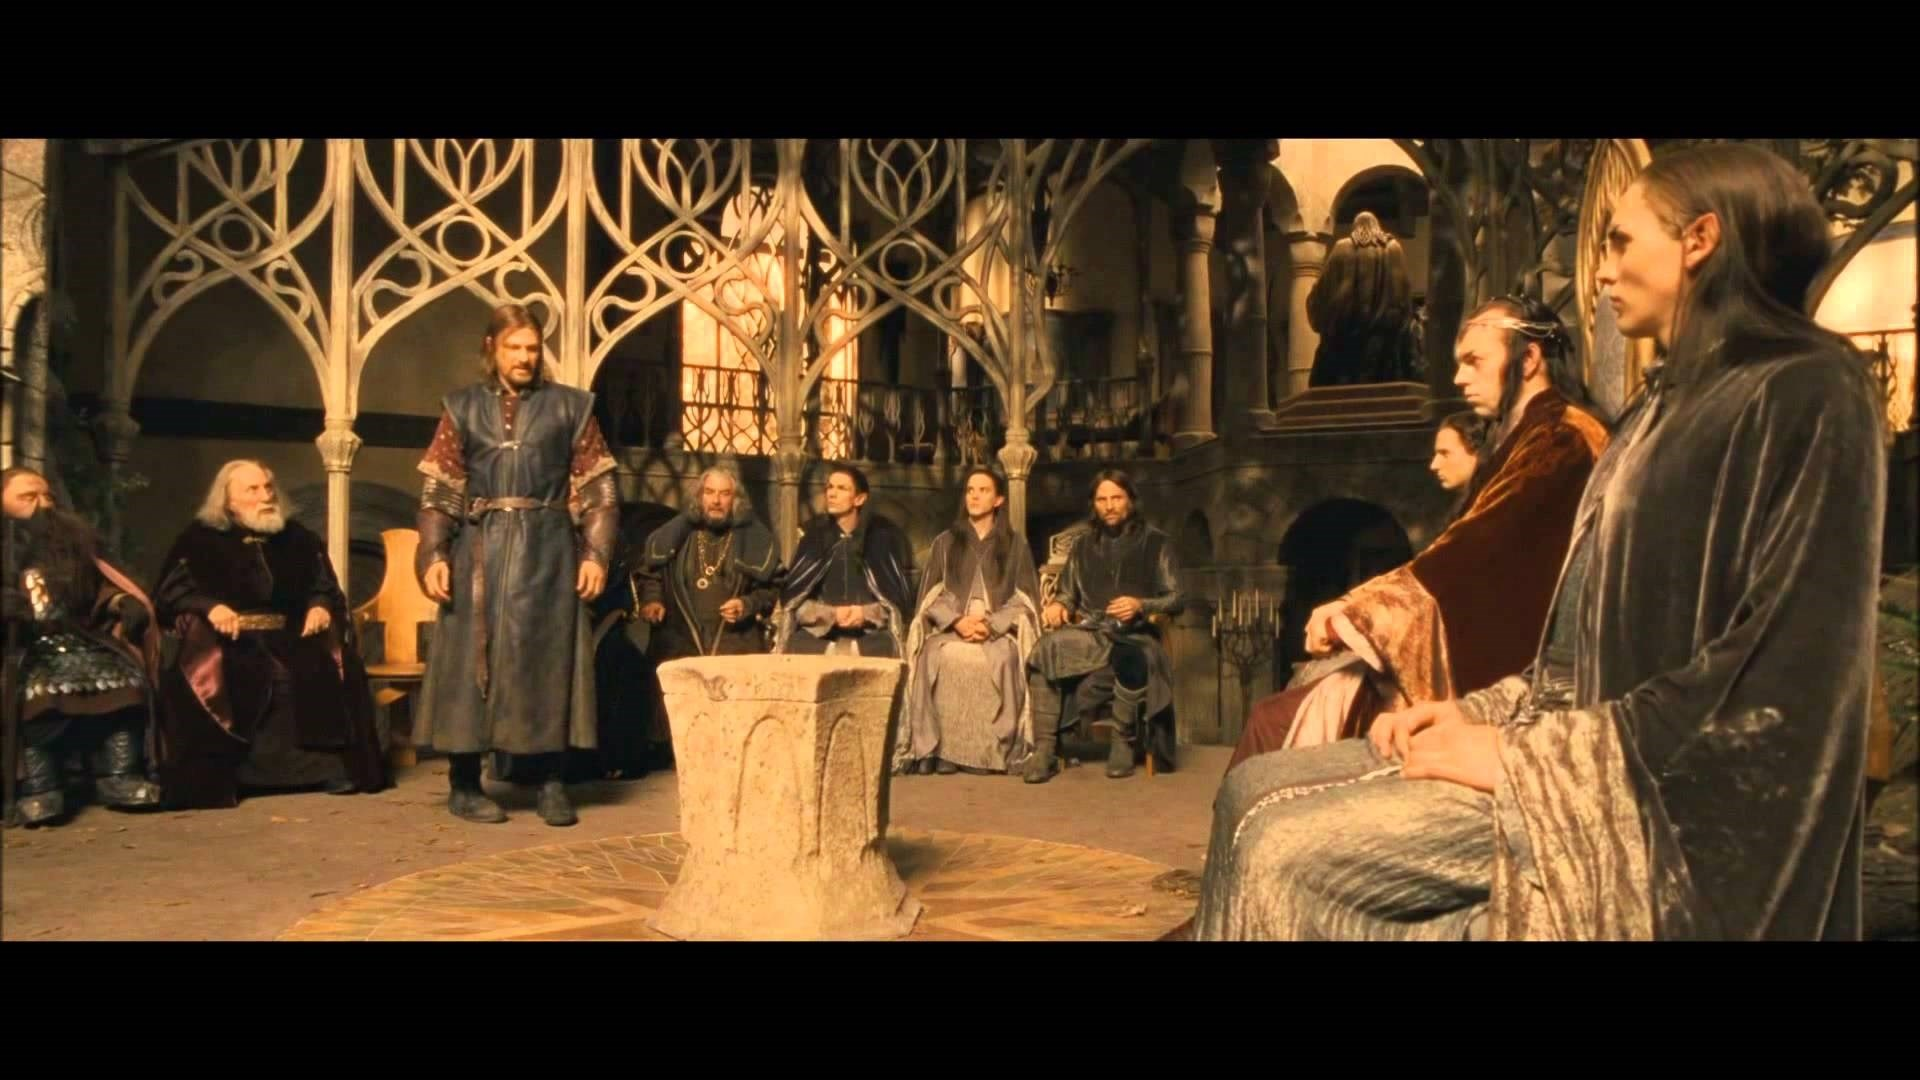 Council Lord of the Rings